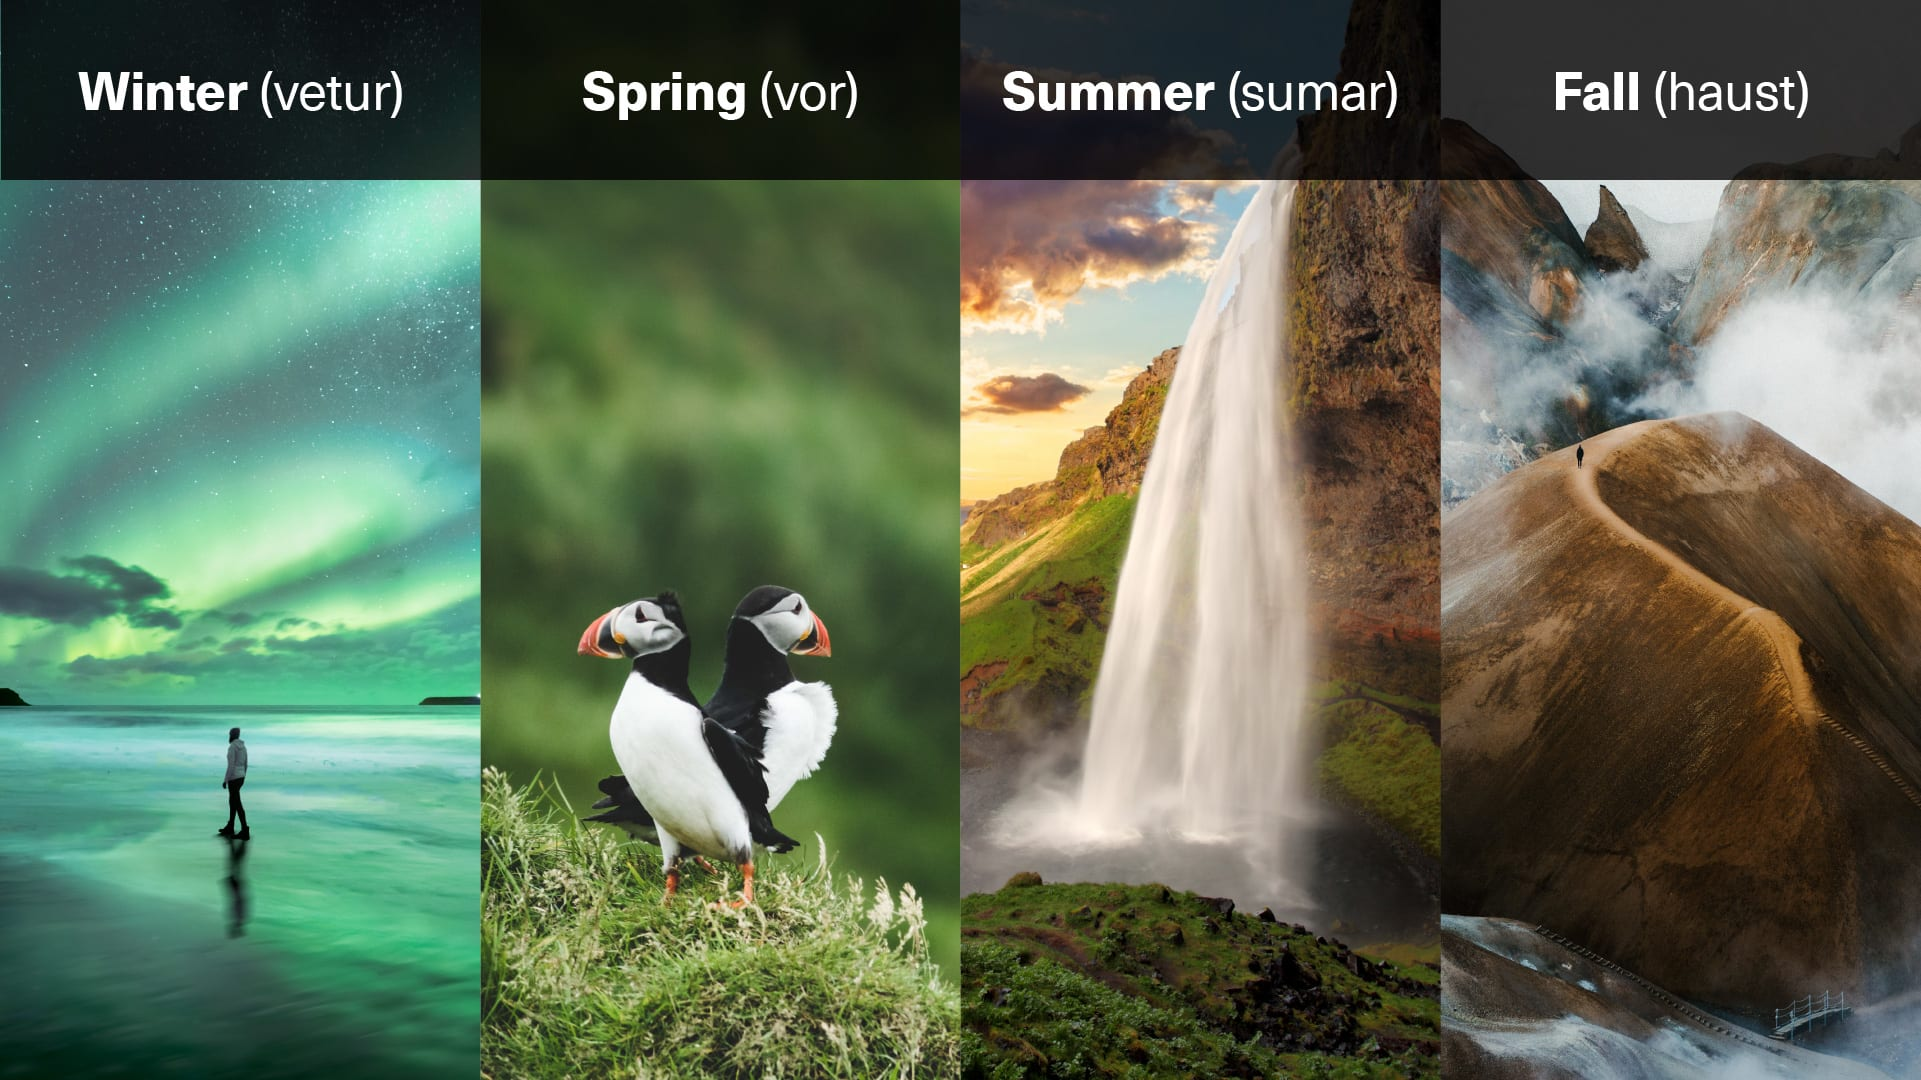 The four seasons in Iceland - winter, summer, spring and autumn - displayed on an illustrative graphic image